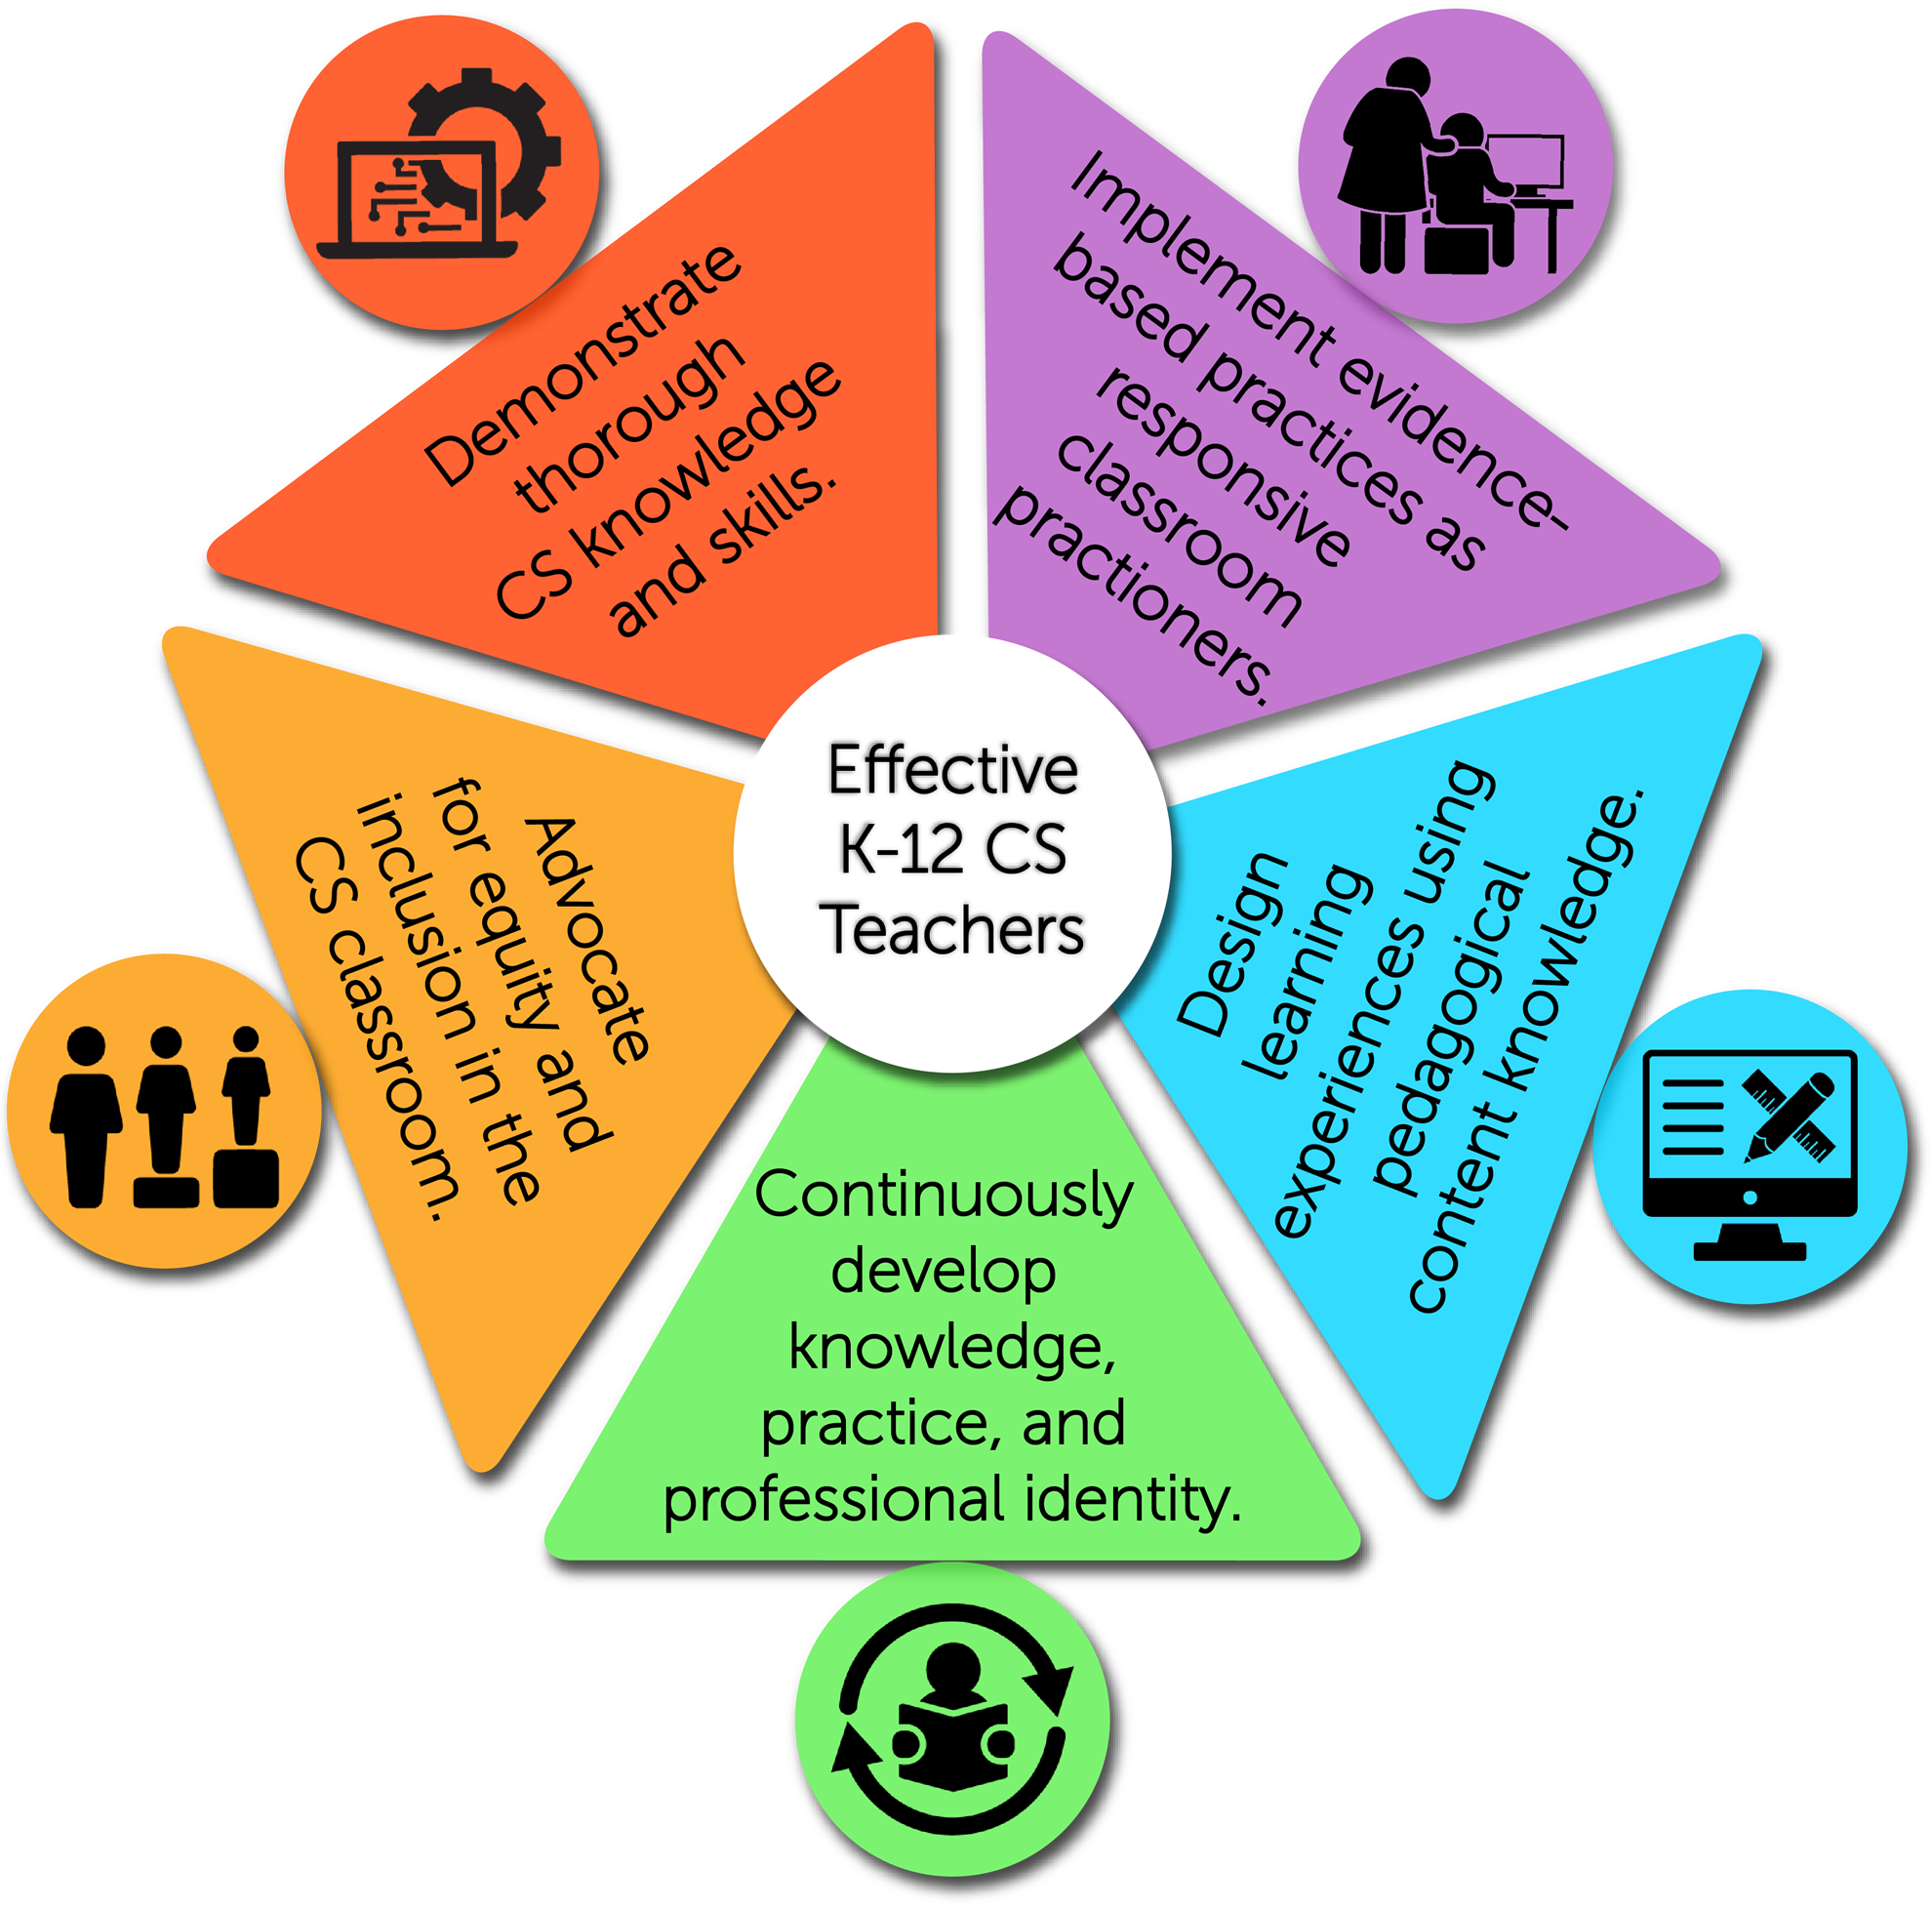 Graphic showing five elements of effective CS teachers